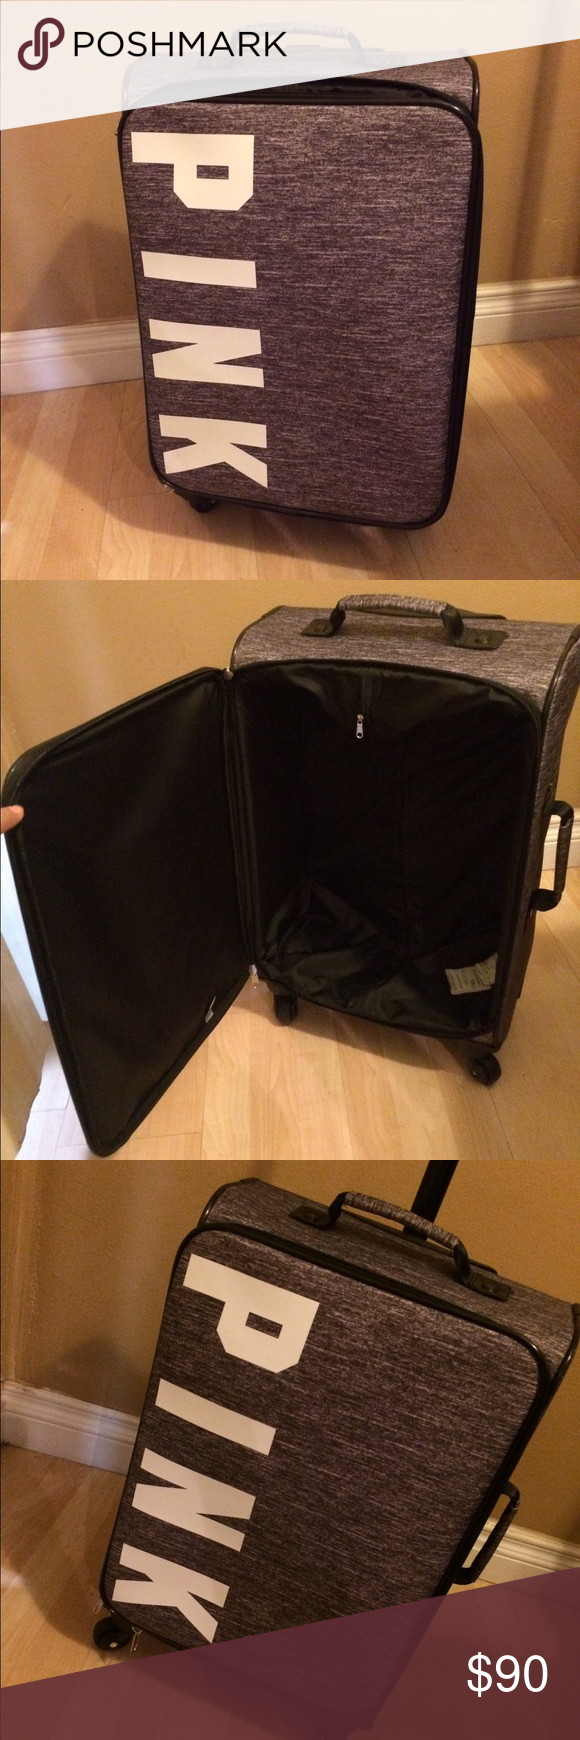 2b0aa856ab1e VS Pink Wheelie Suitcase Luggage This is brand new in plastic cover ...